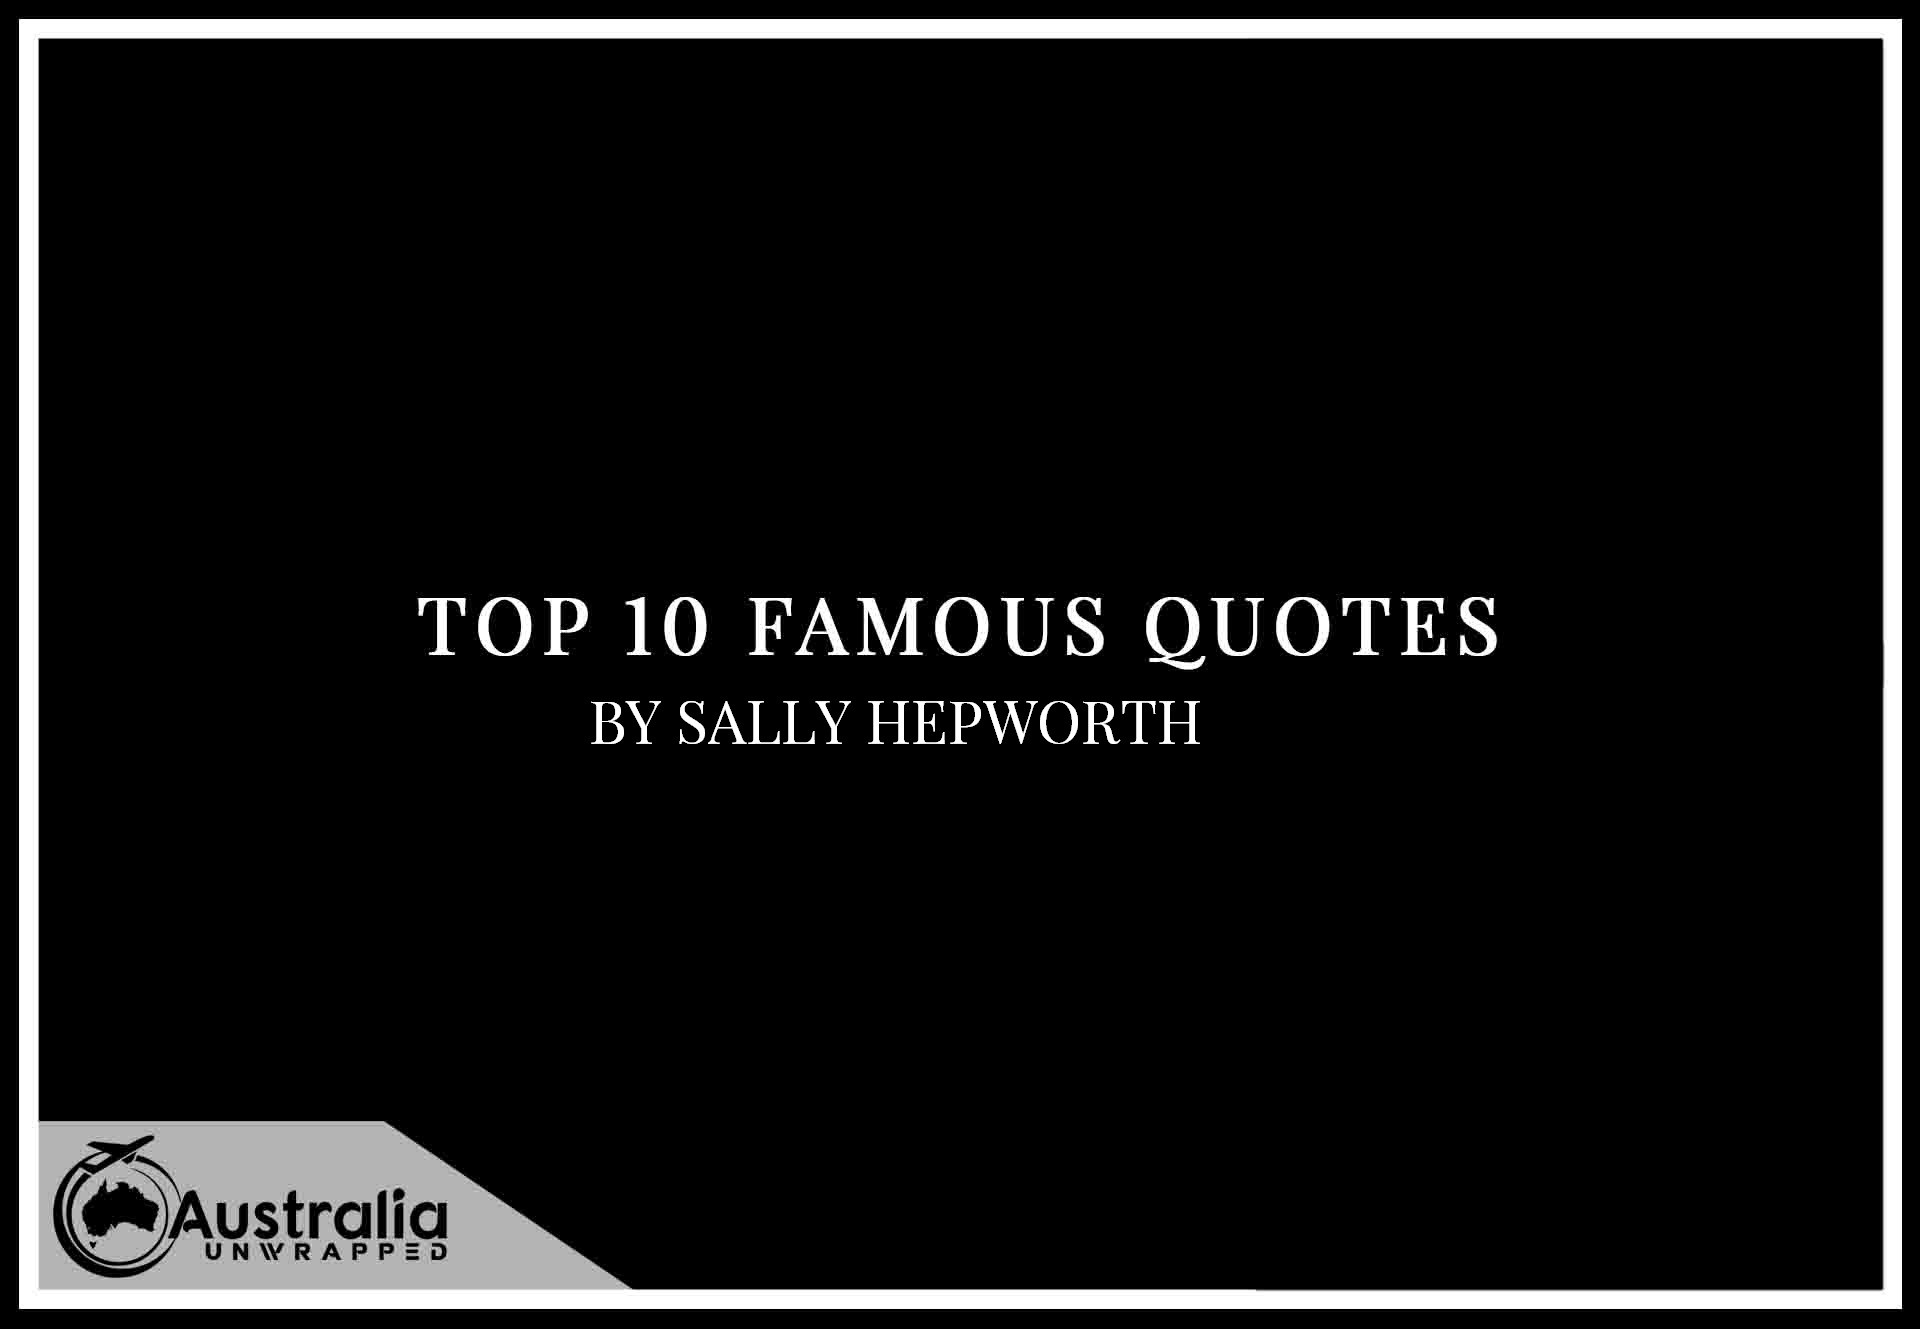 Top 10 Famous Quotes by Author Sally Hepworth